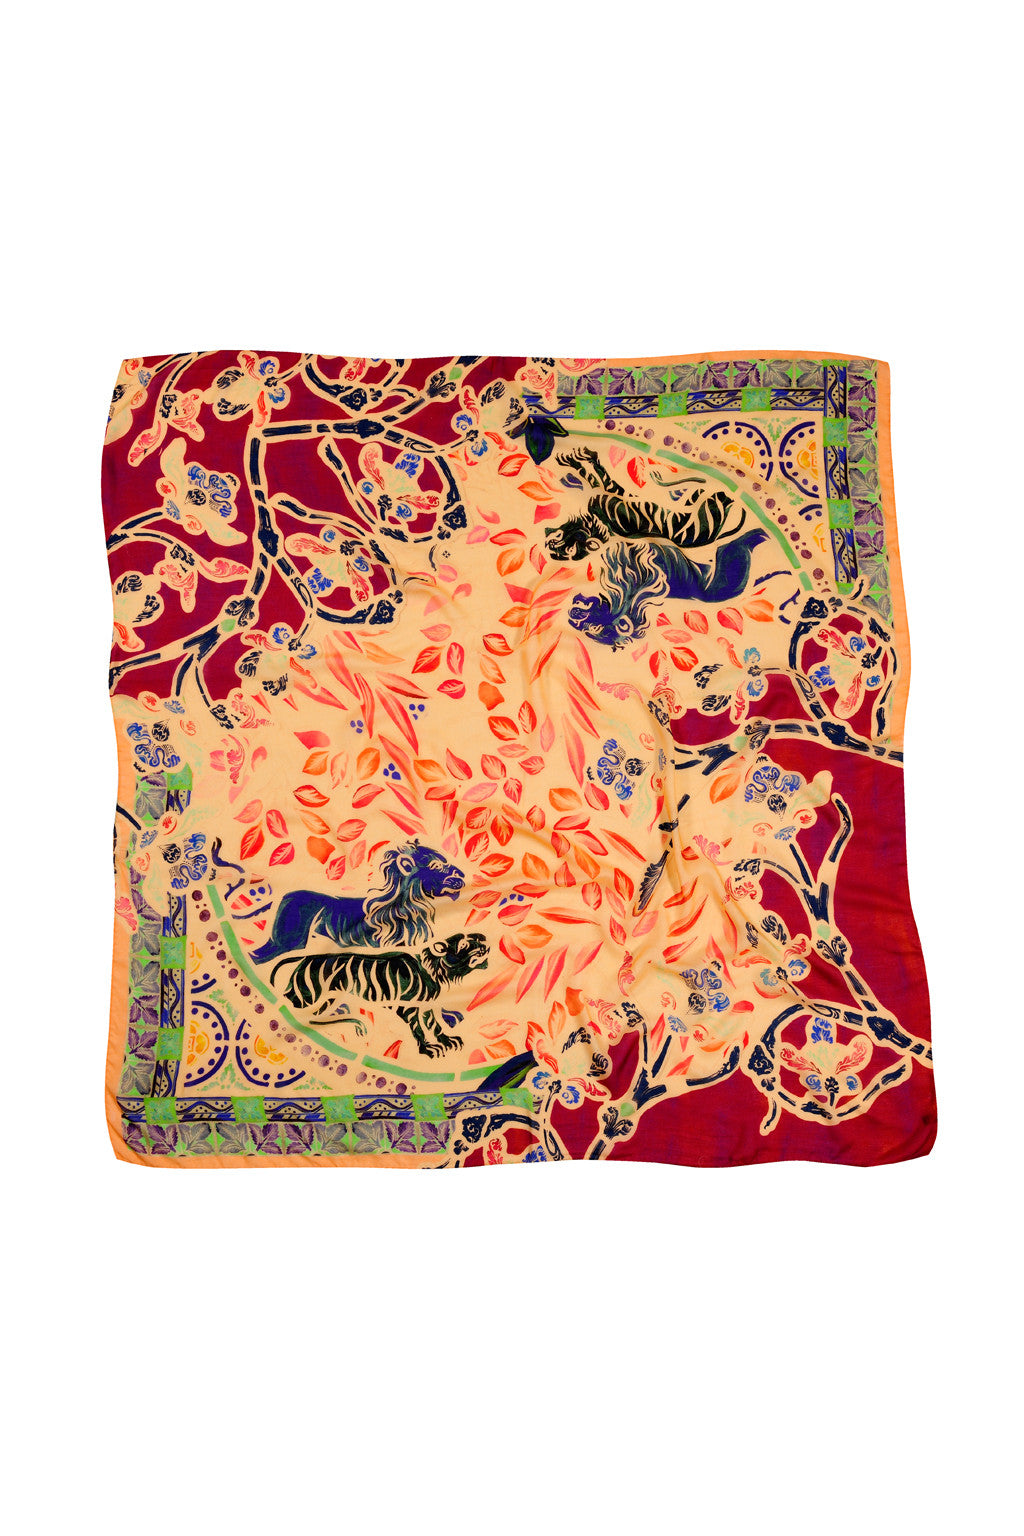 YELLOW CASHMERE & MODAL LION OF EDEN 140 X 140 CM SCARF